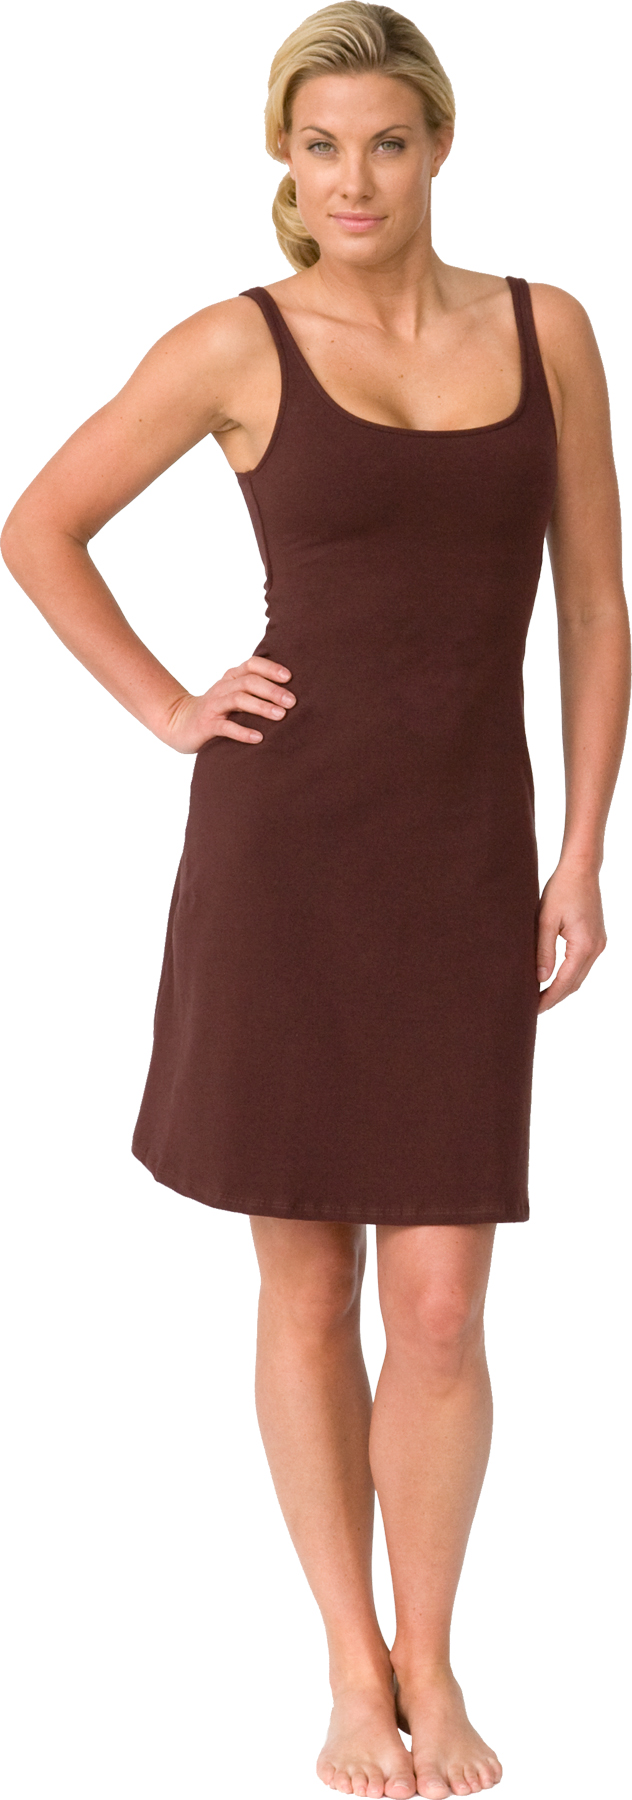 majamas-cozy-nursing-dress-cocoa-2.jpg